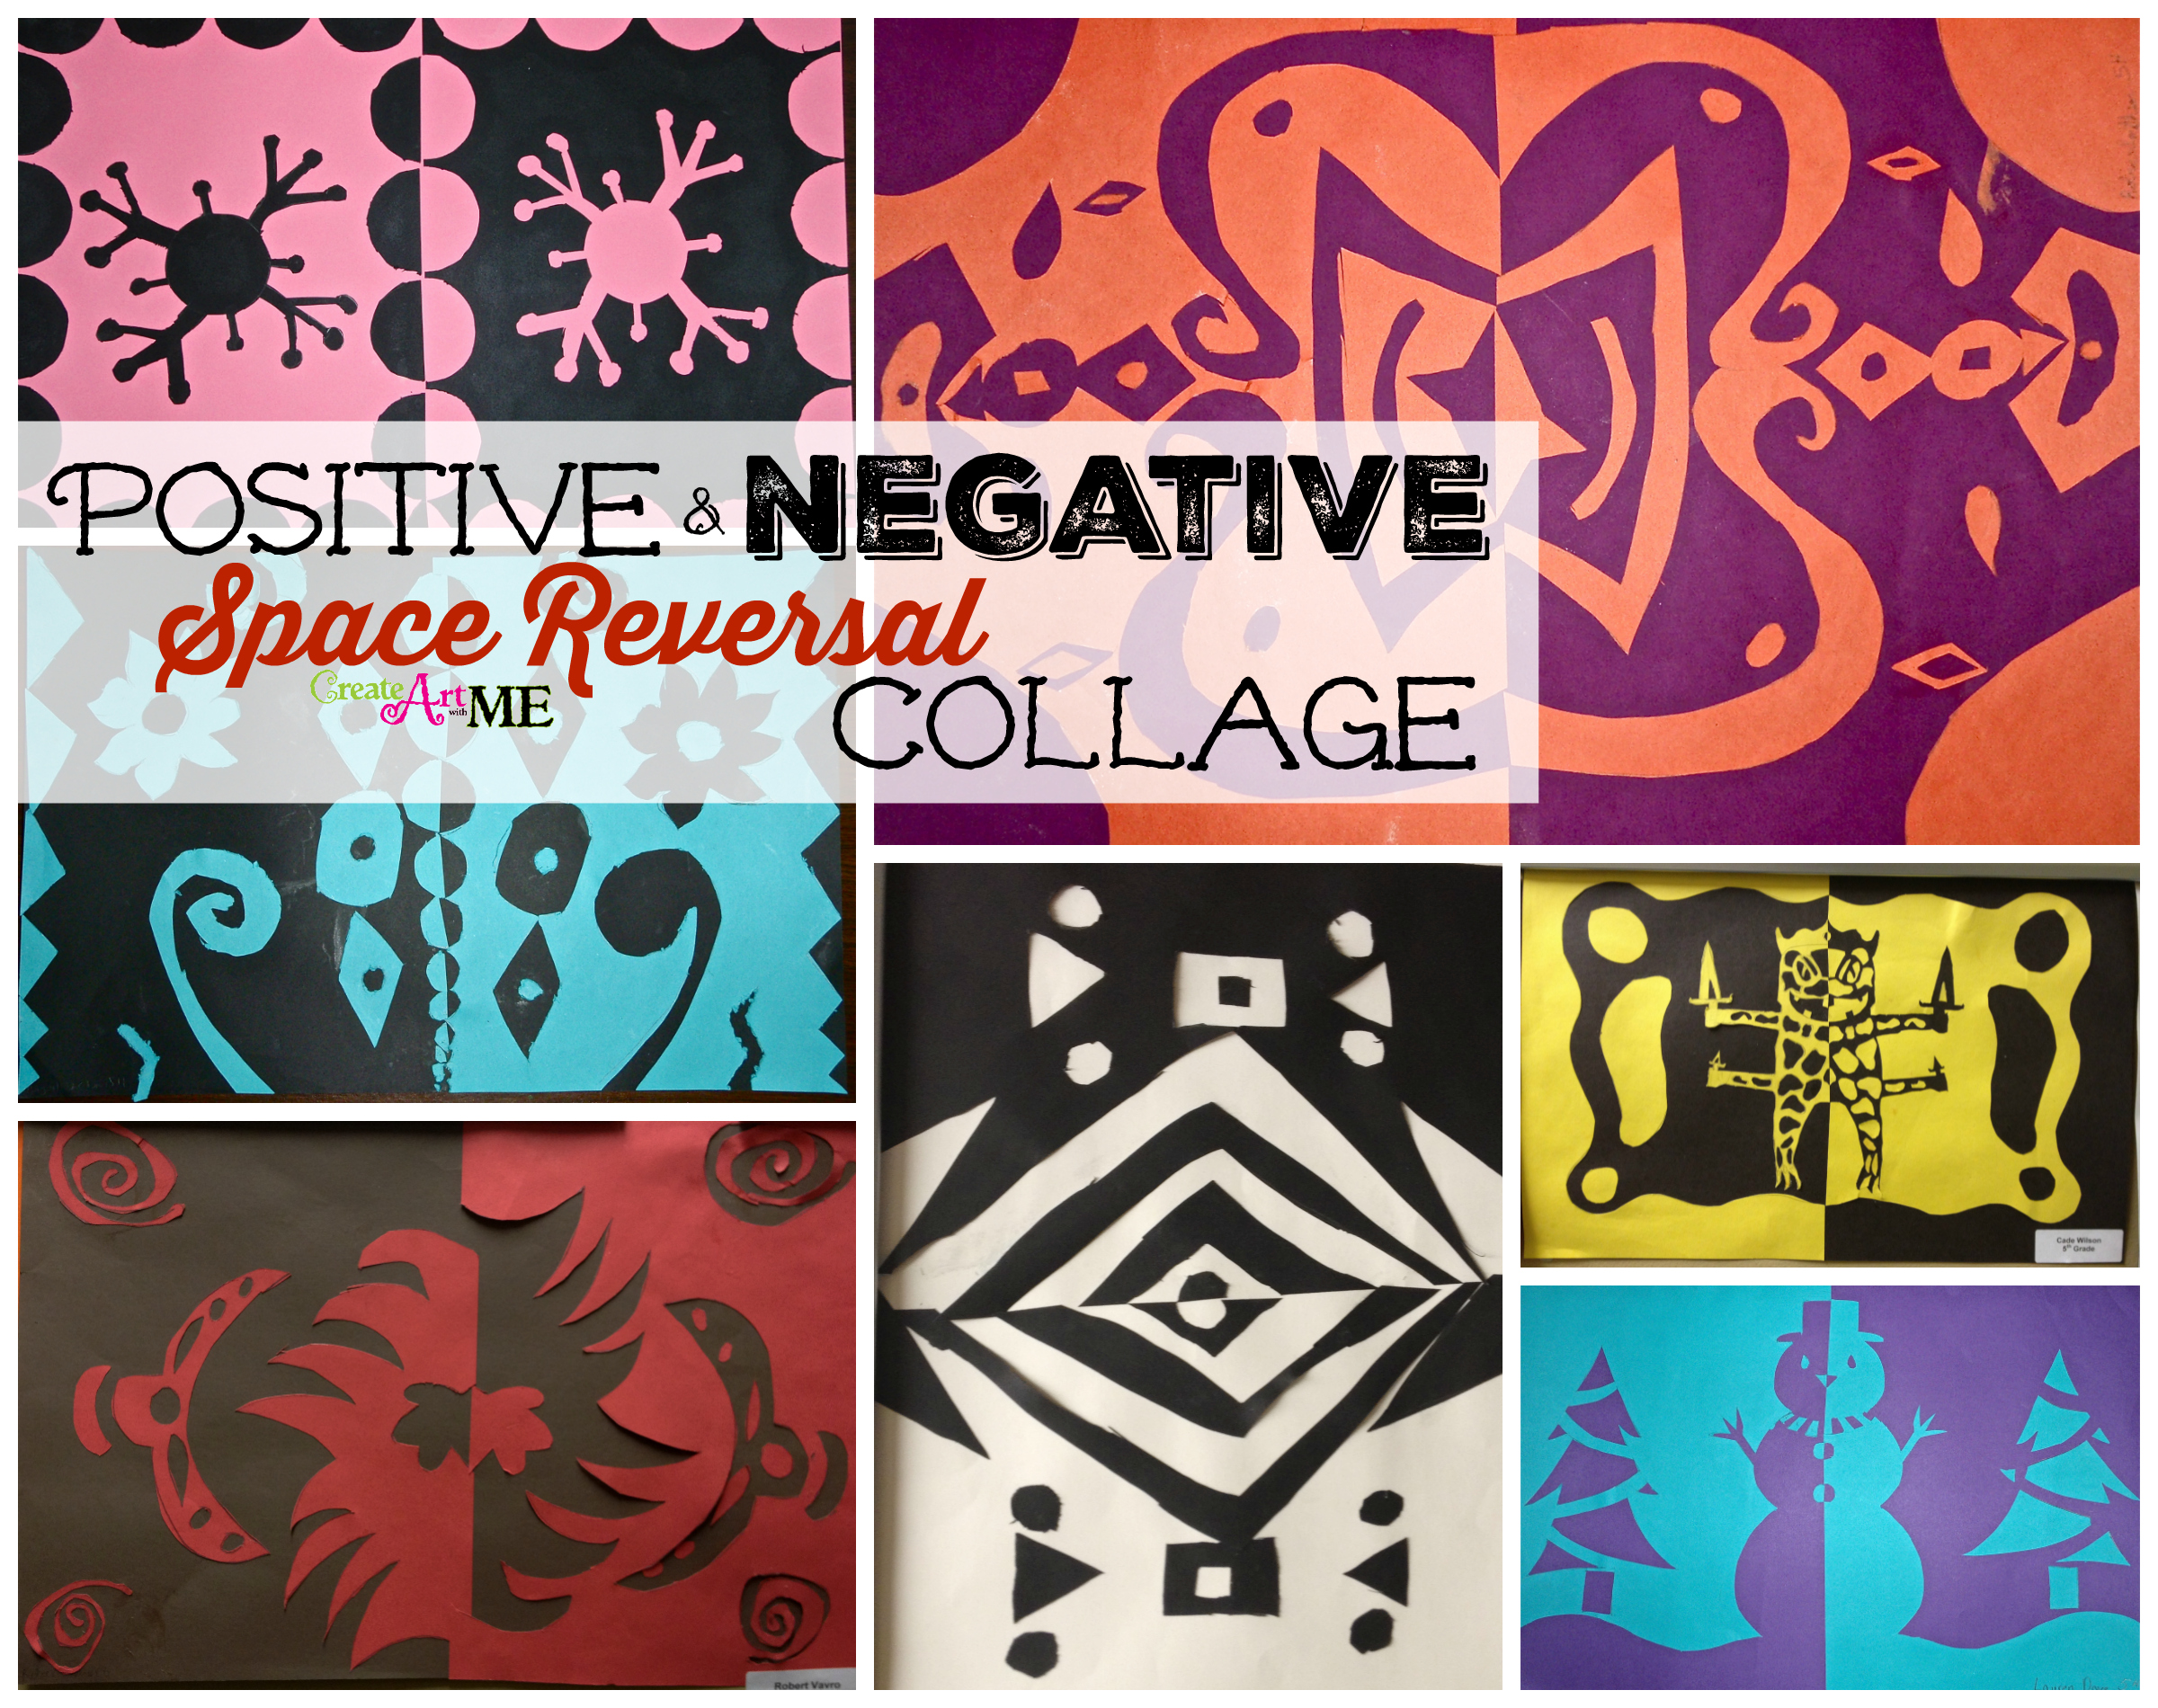 Positive Amp Negative Space Reversal Collage